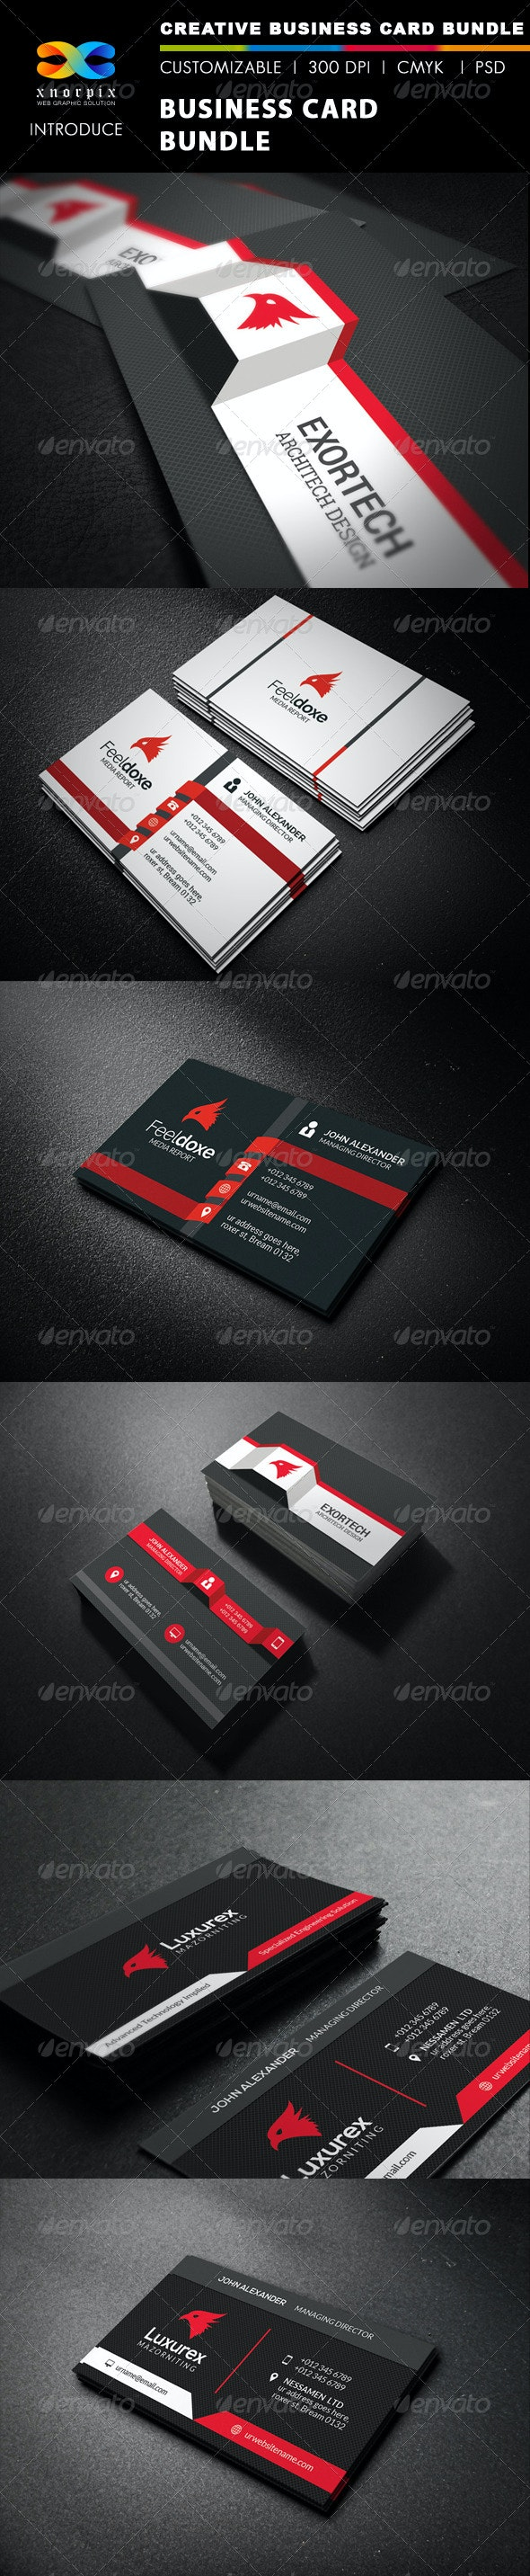 Business Card Bundle 3 in 1-Vol 37 - Corporate Business Cards